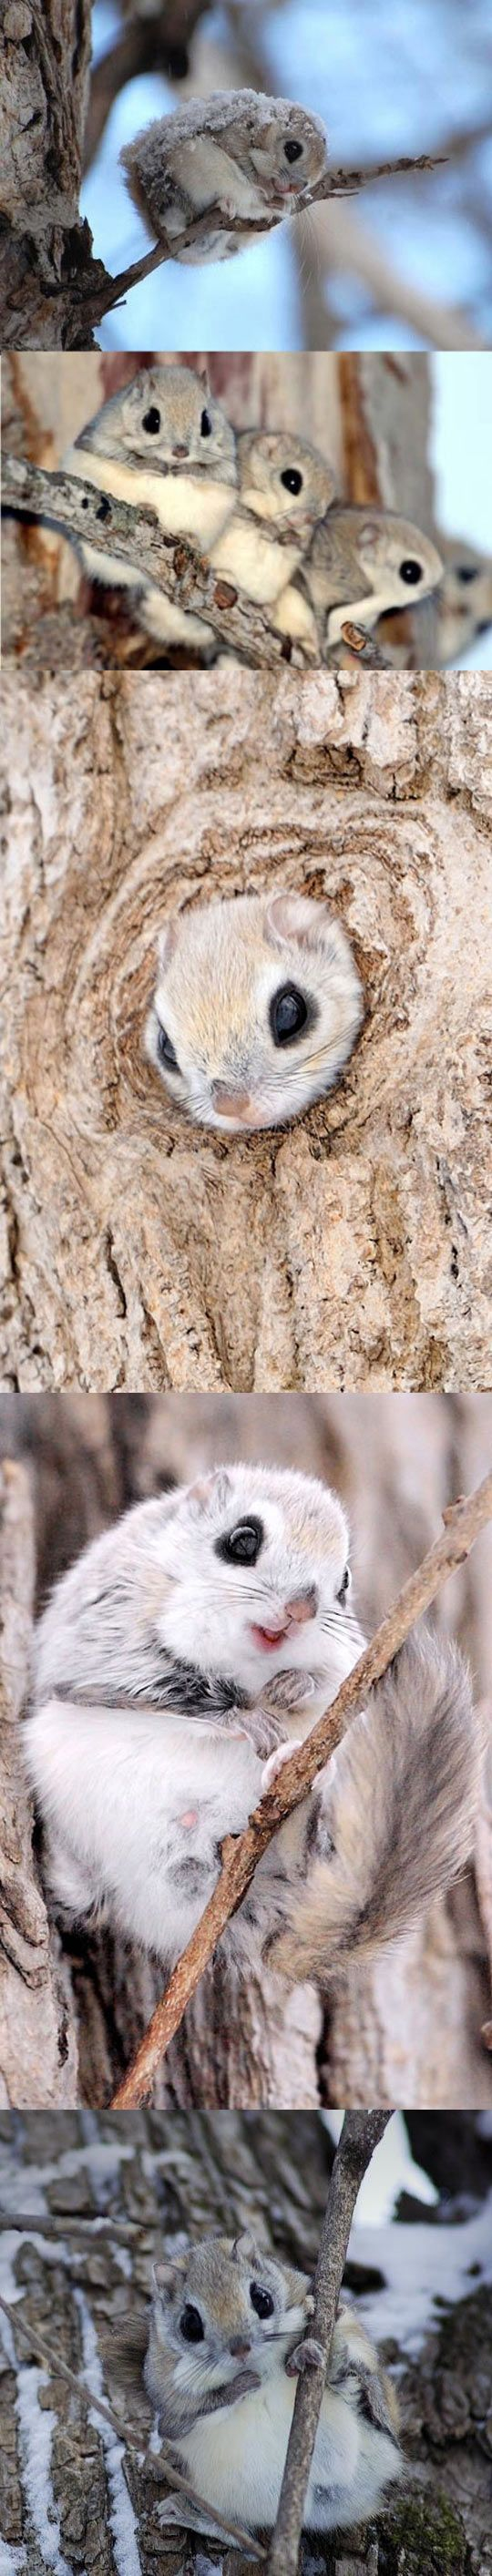 Siberian or Russian flying squirrels ❤️